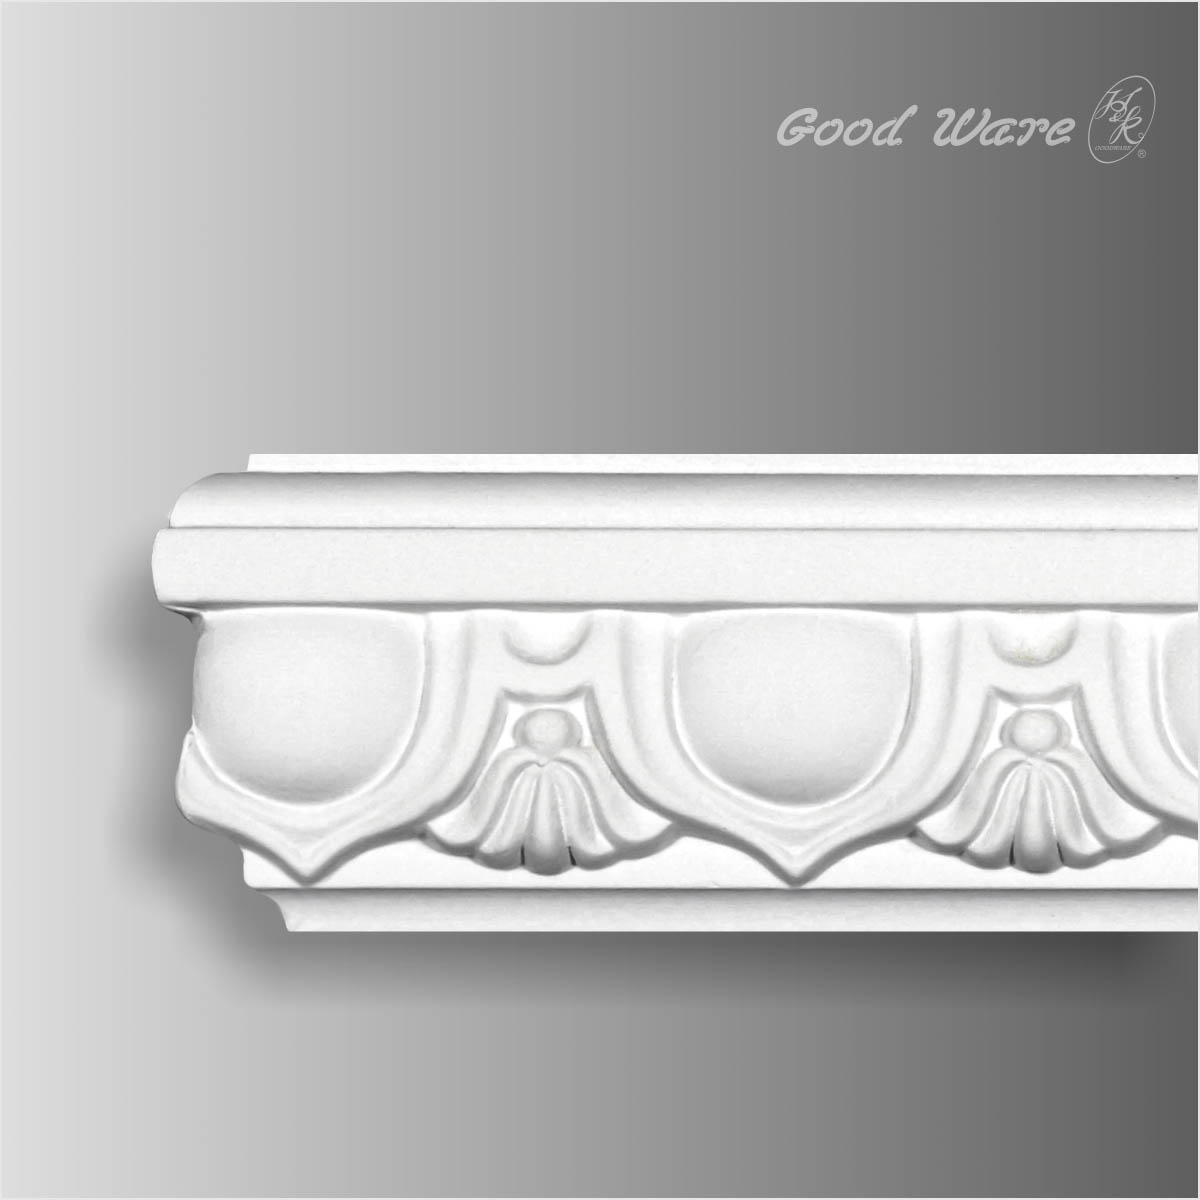 Polyurethane egg and dart wall moldings trim